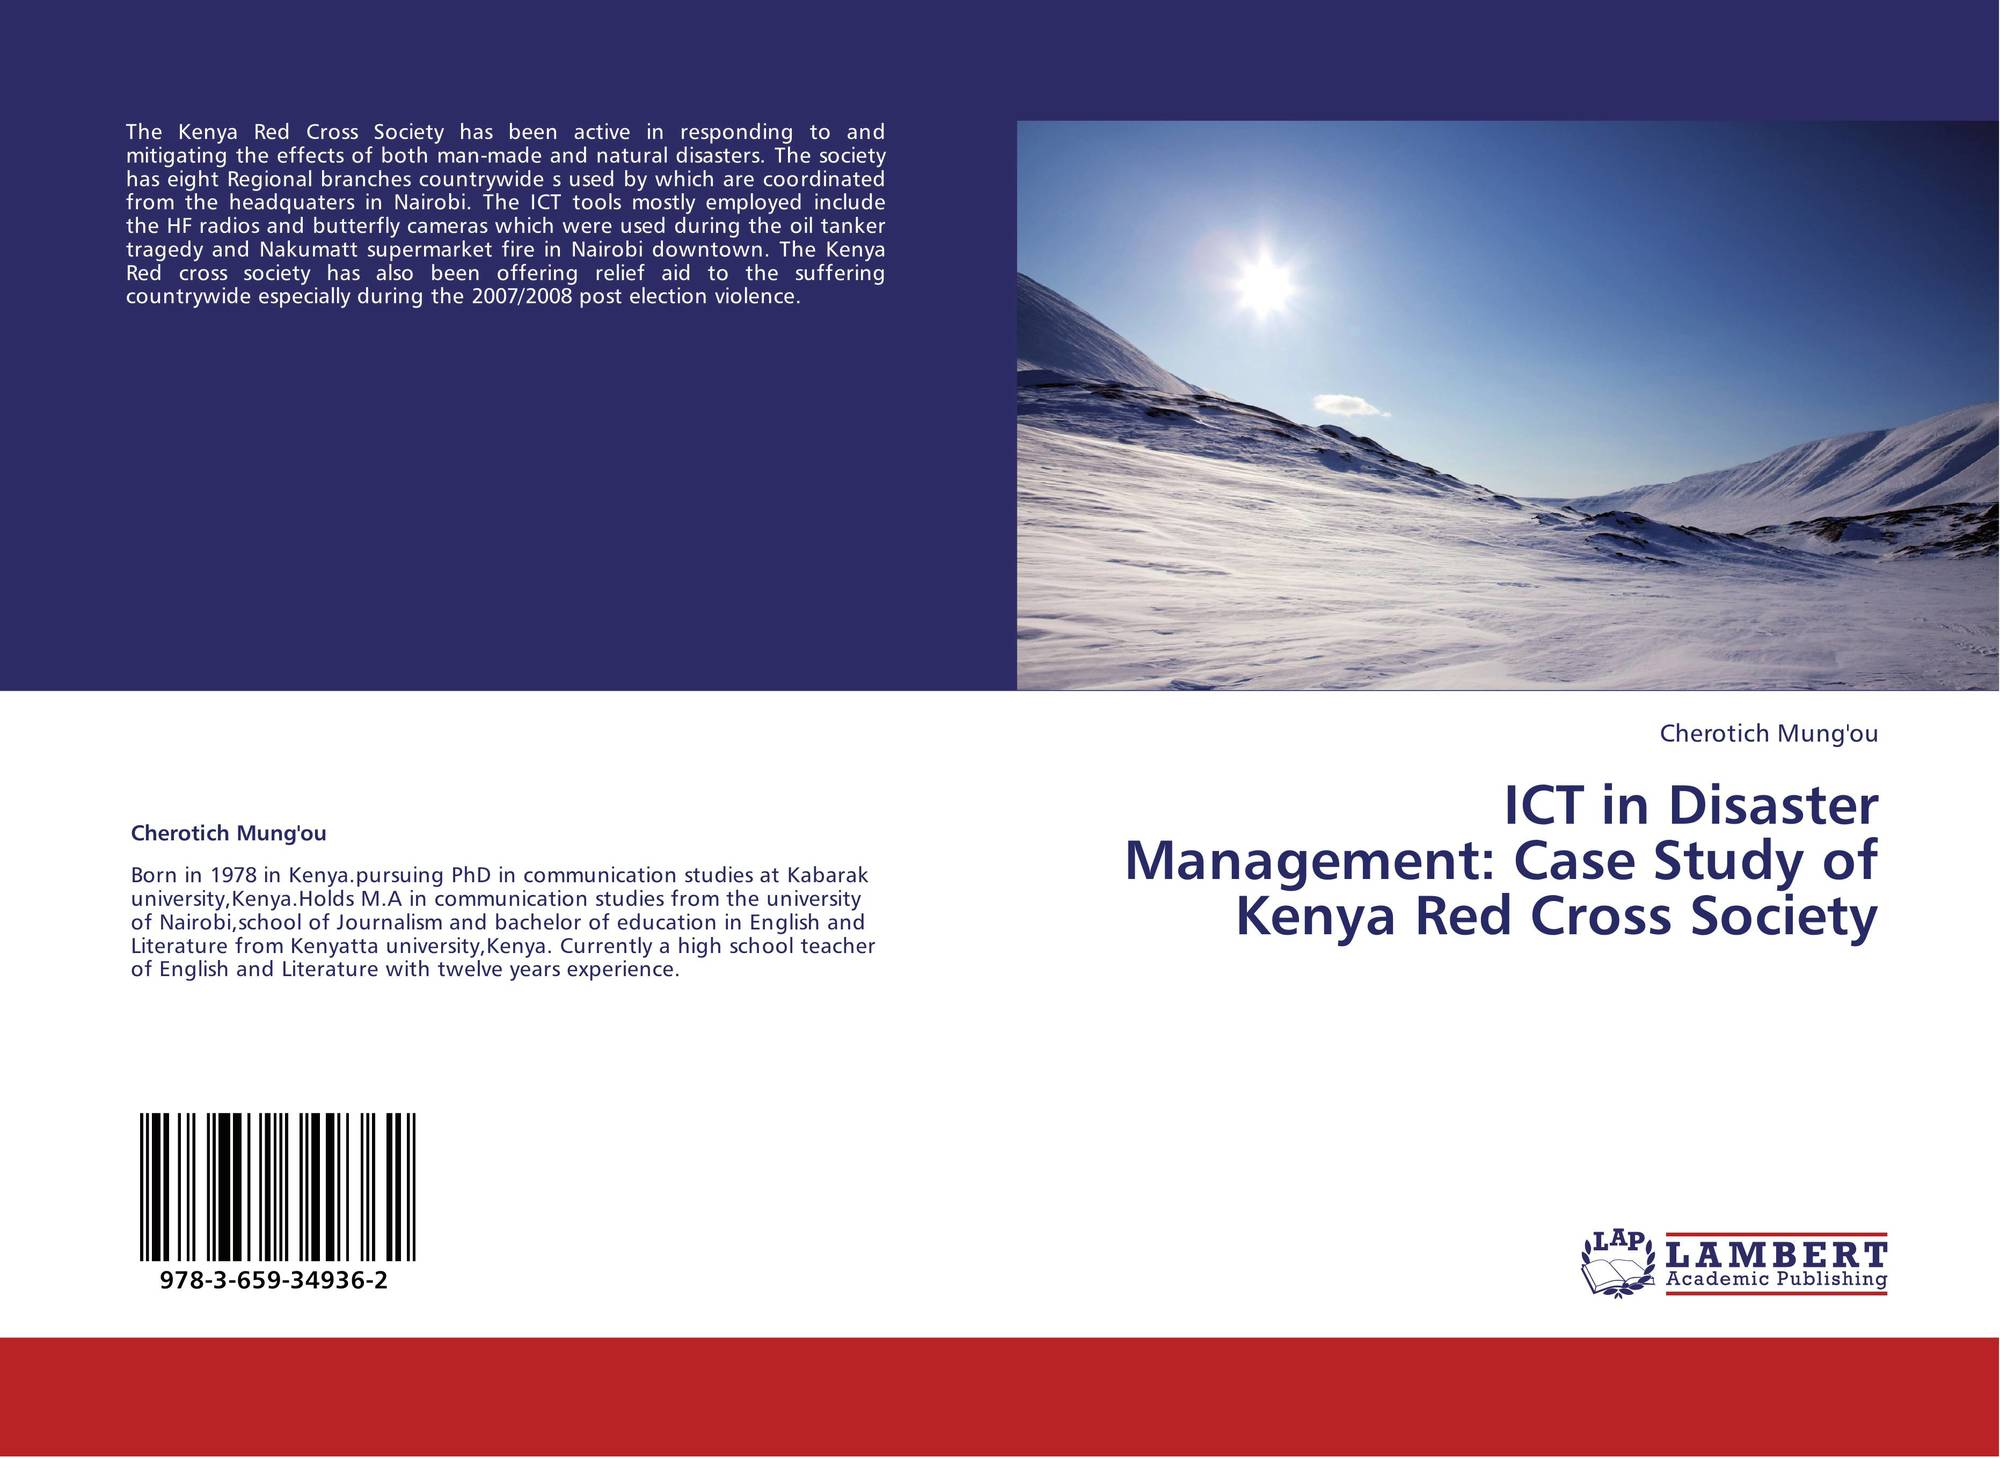 ICT in Disaster Management: Case Study of Kenya Red Cross